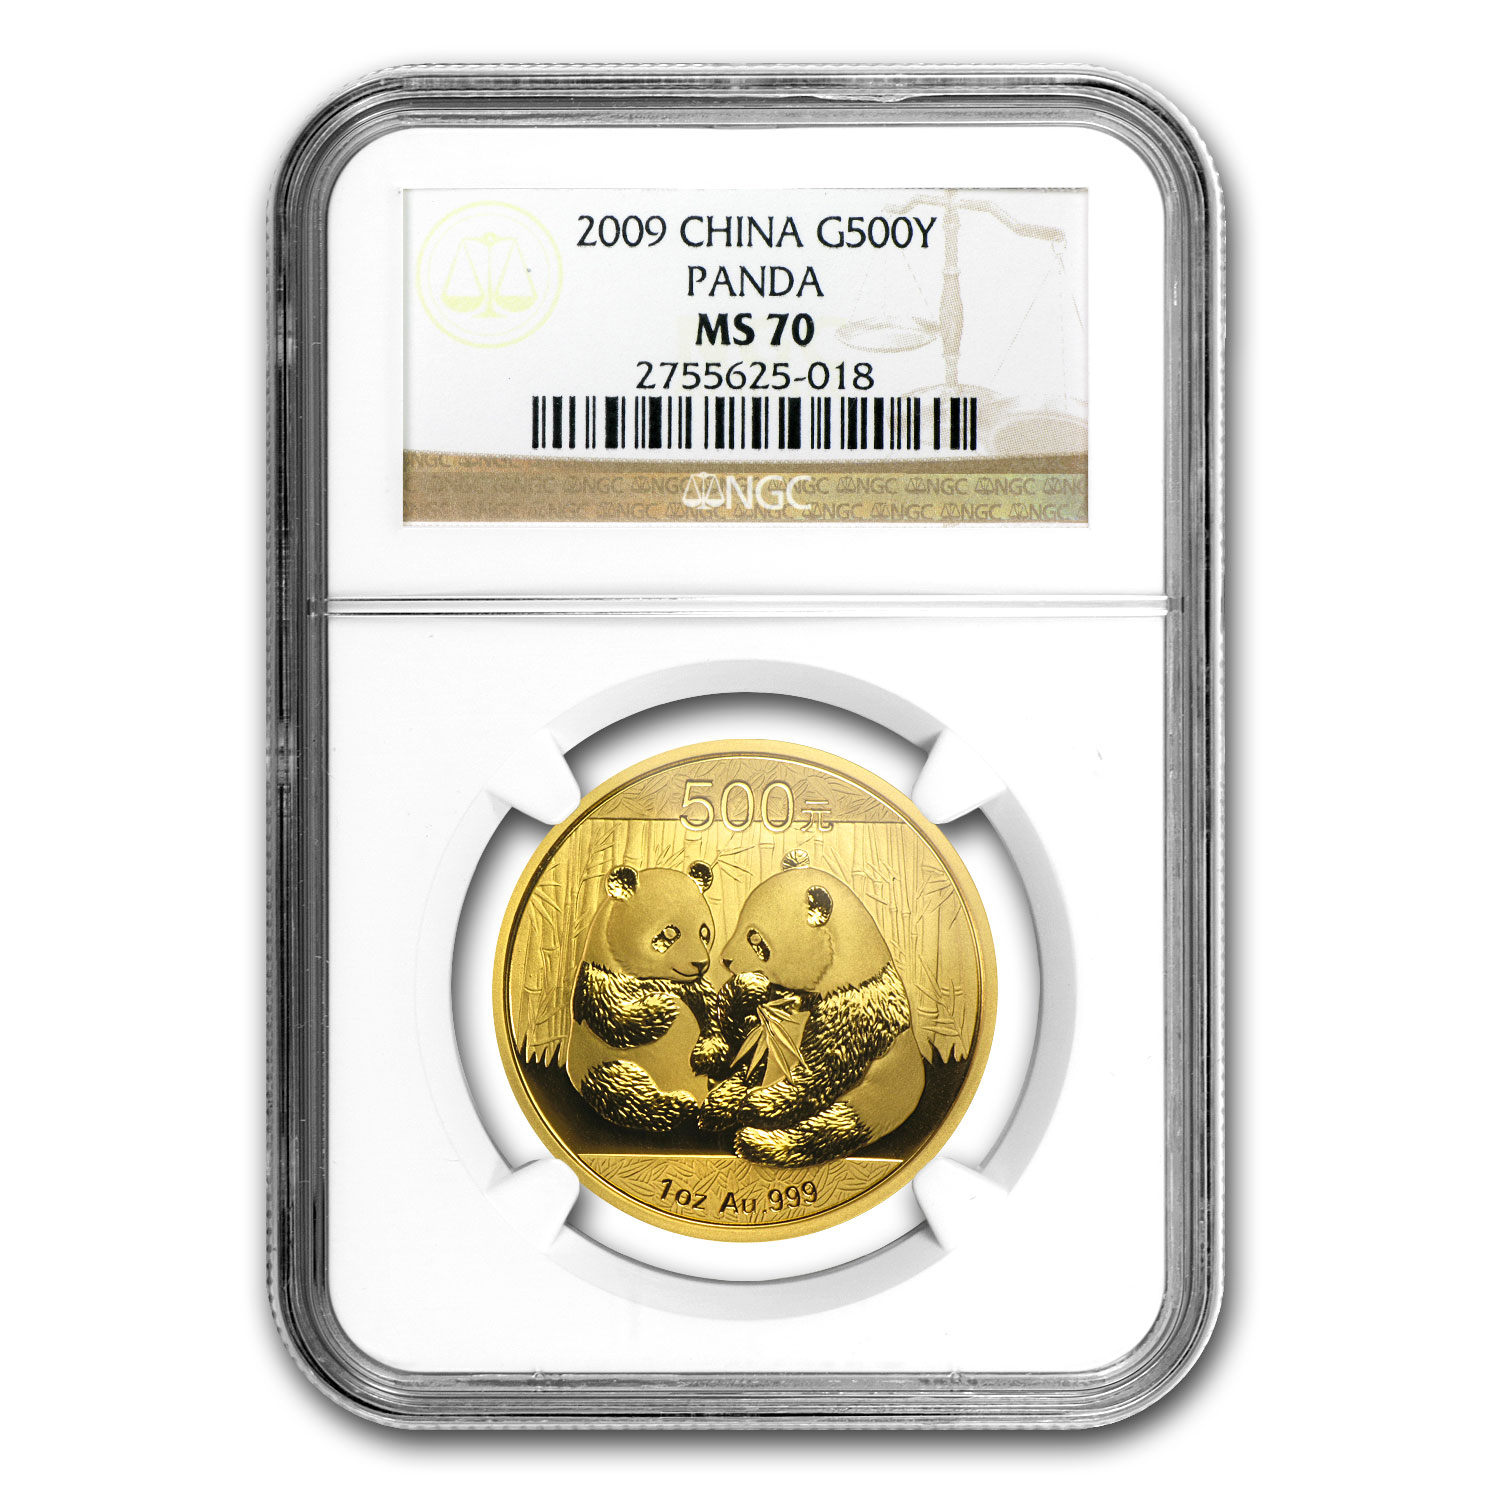 2009 1 oz Gold Chinese Panda MS-70 NGC Registry Set